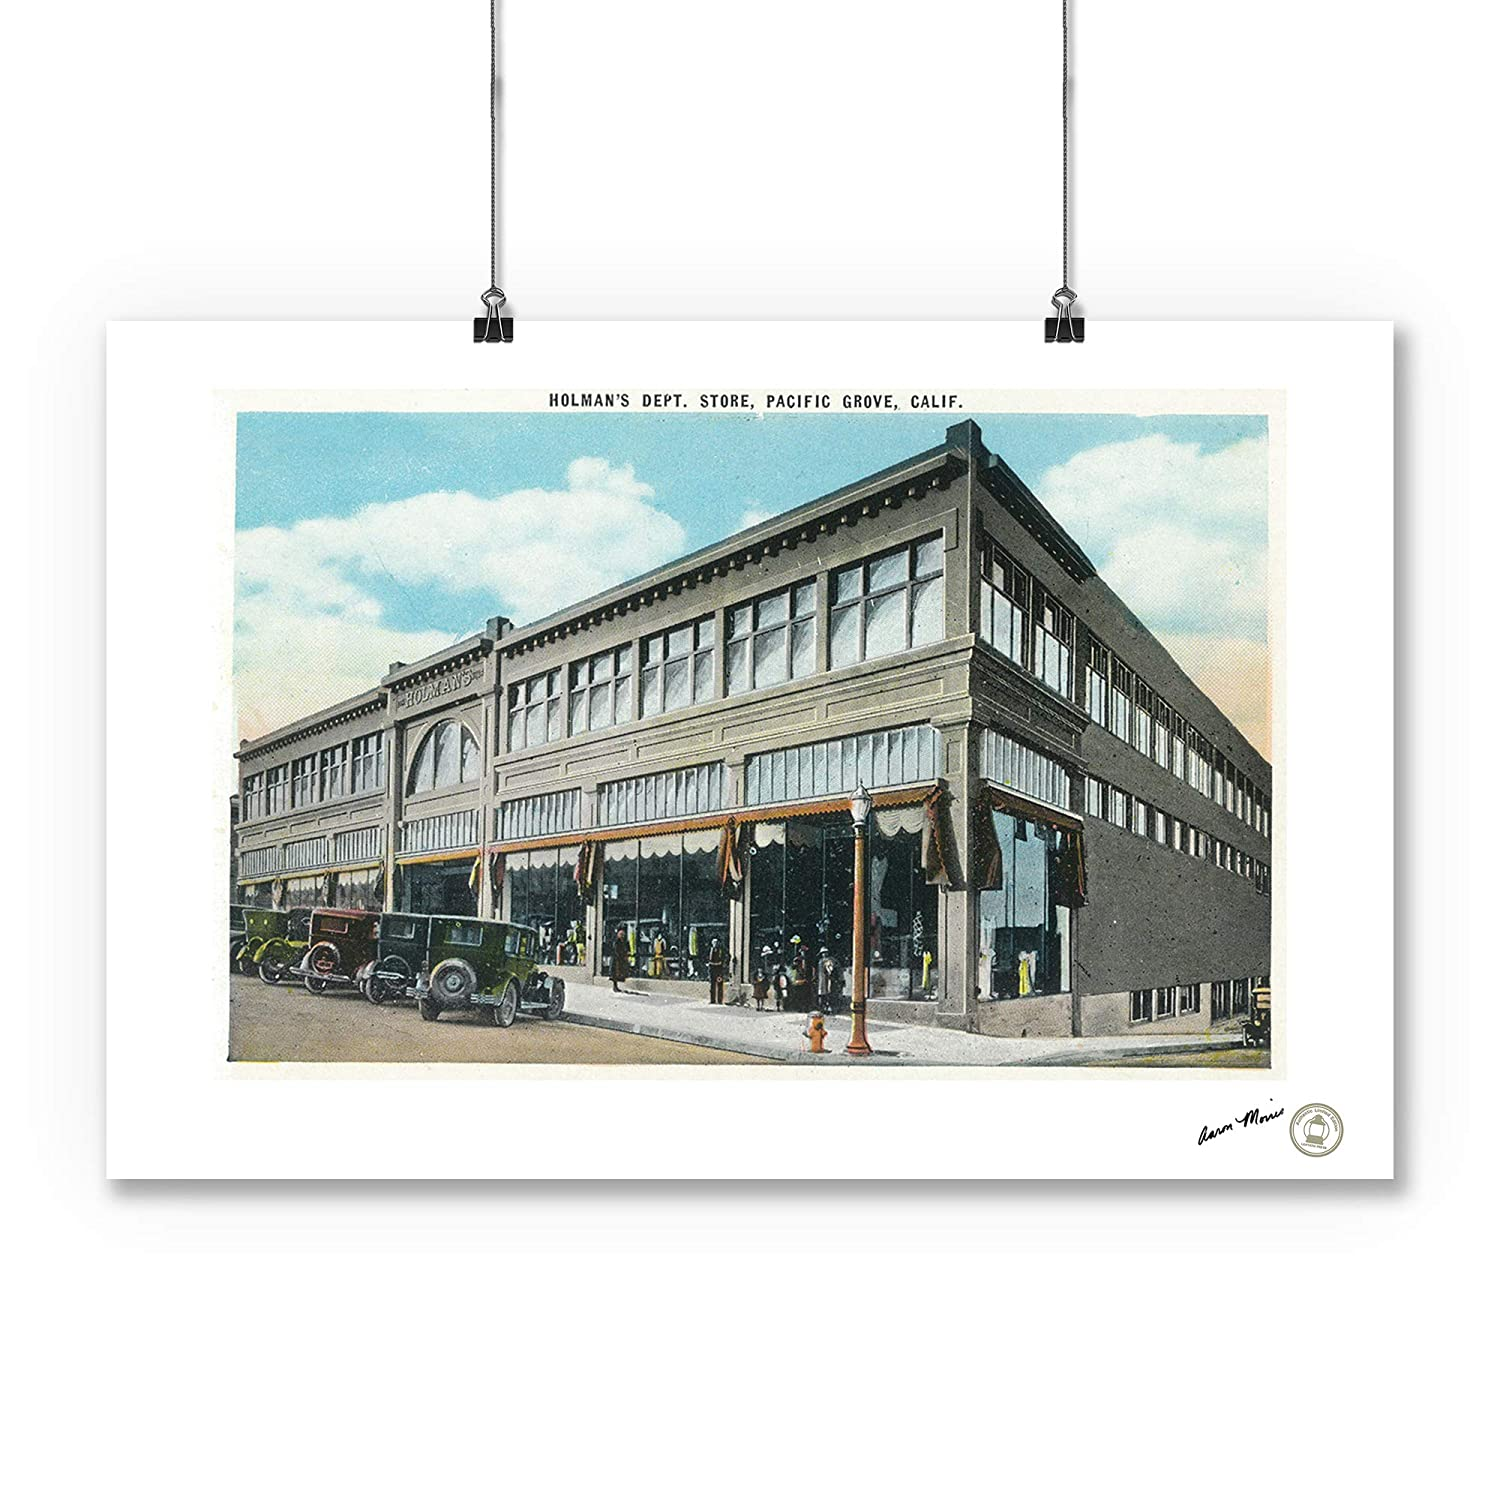 21f125cd3732 Pacific Grove, California - Exterior View of Holman's Department Store  (16x24 SIGNED Print Master Giclee Print w/Certificate of Authenticity -  Wall ...